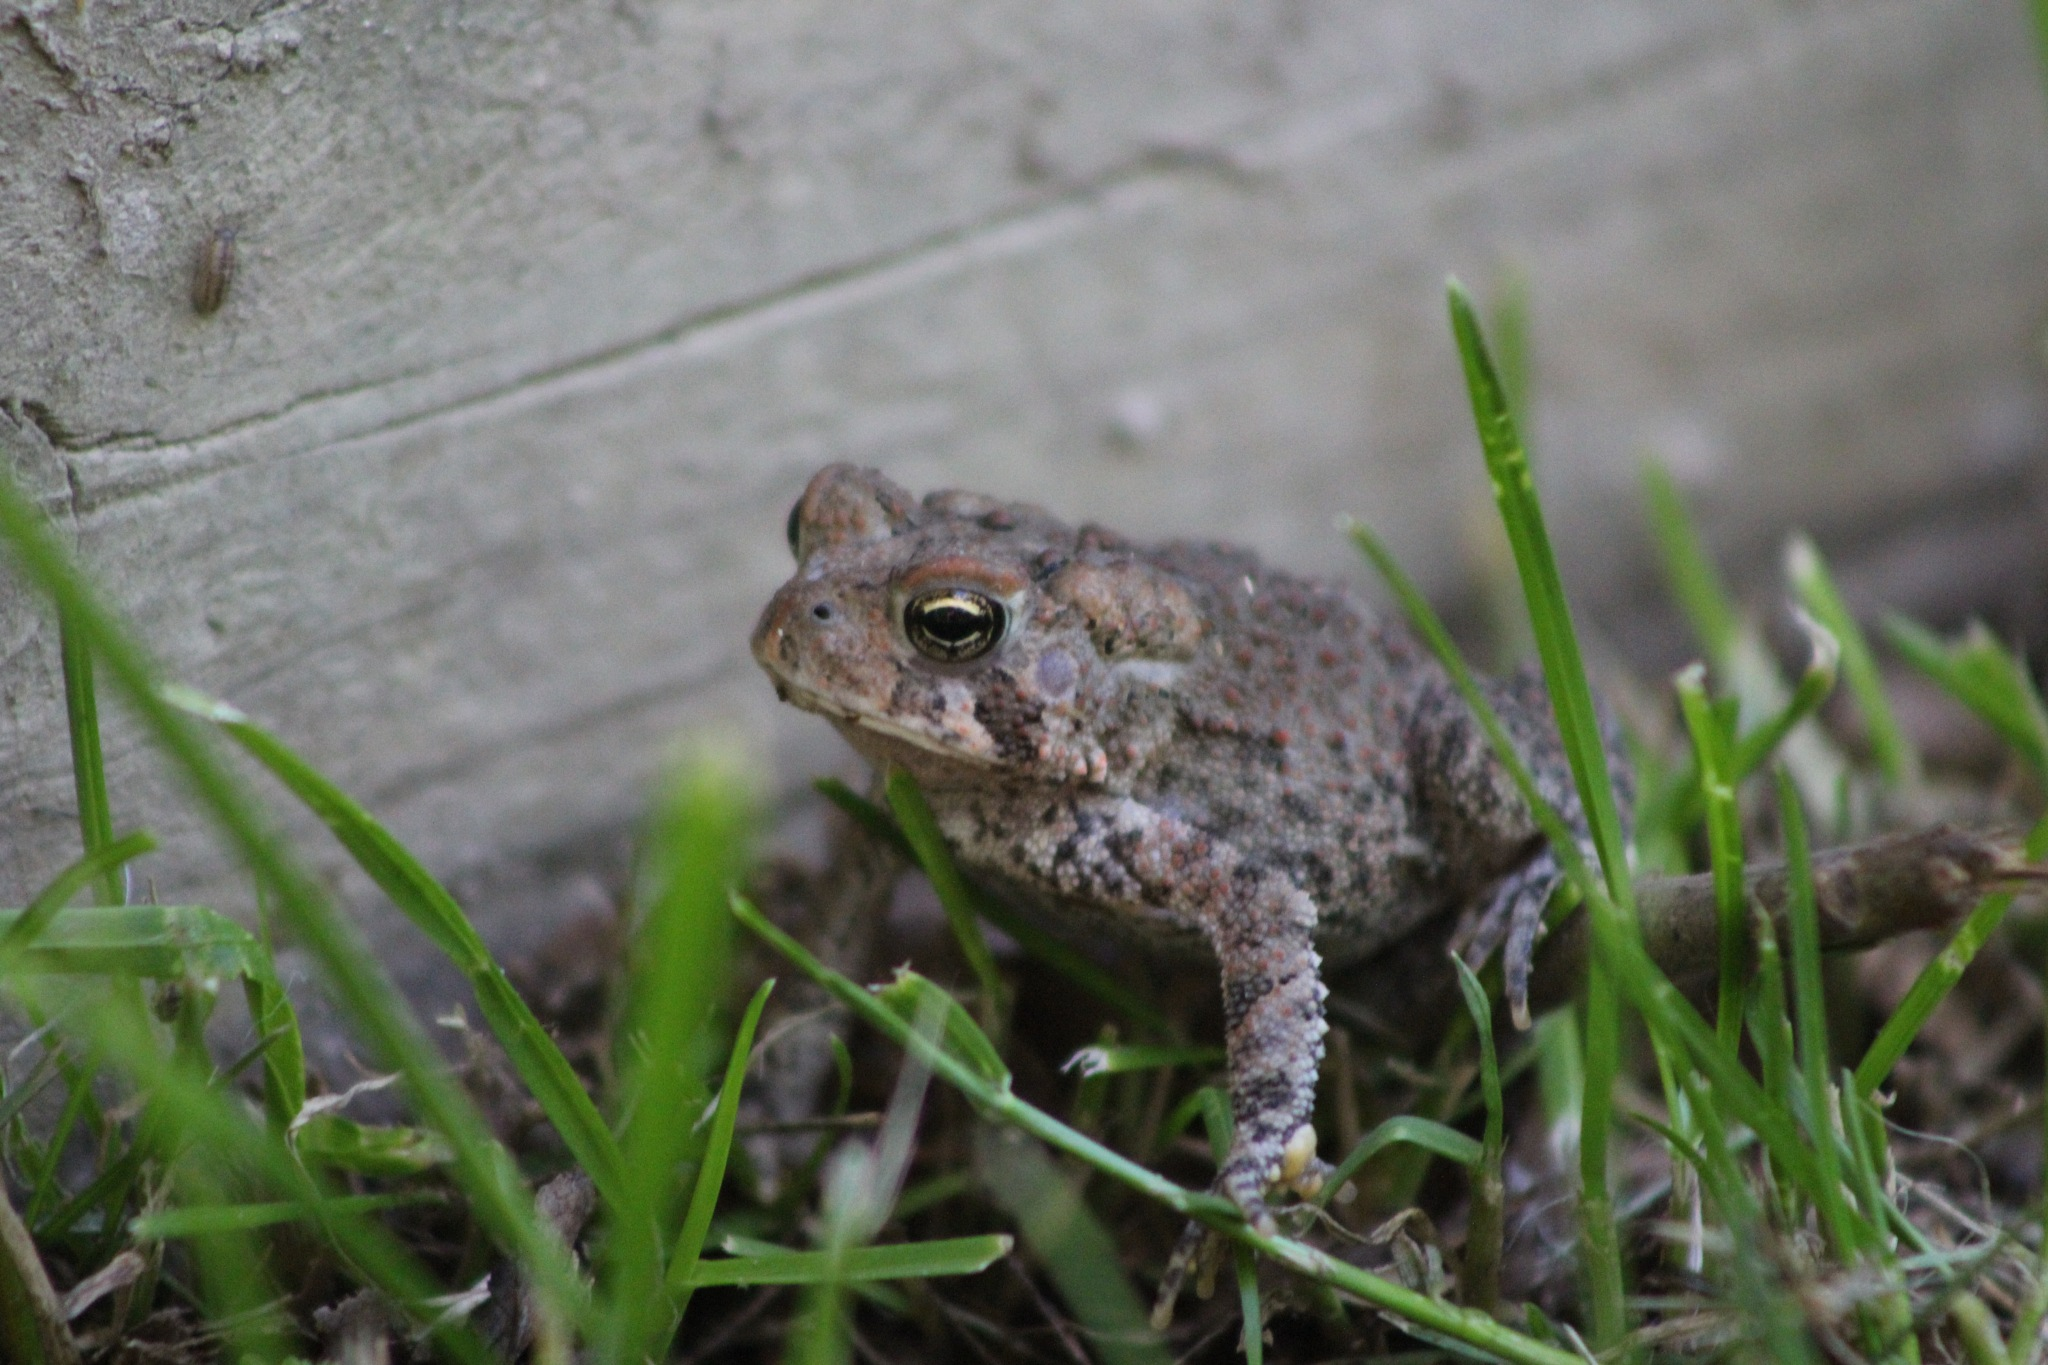 Toad by Chaotic Beauty